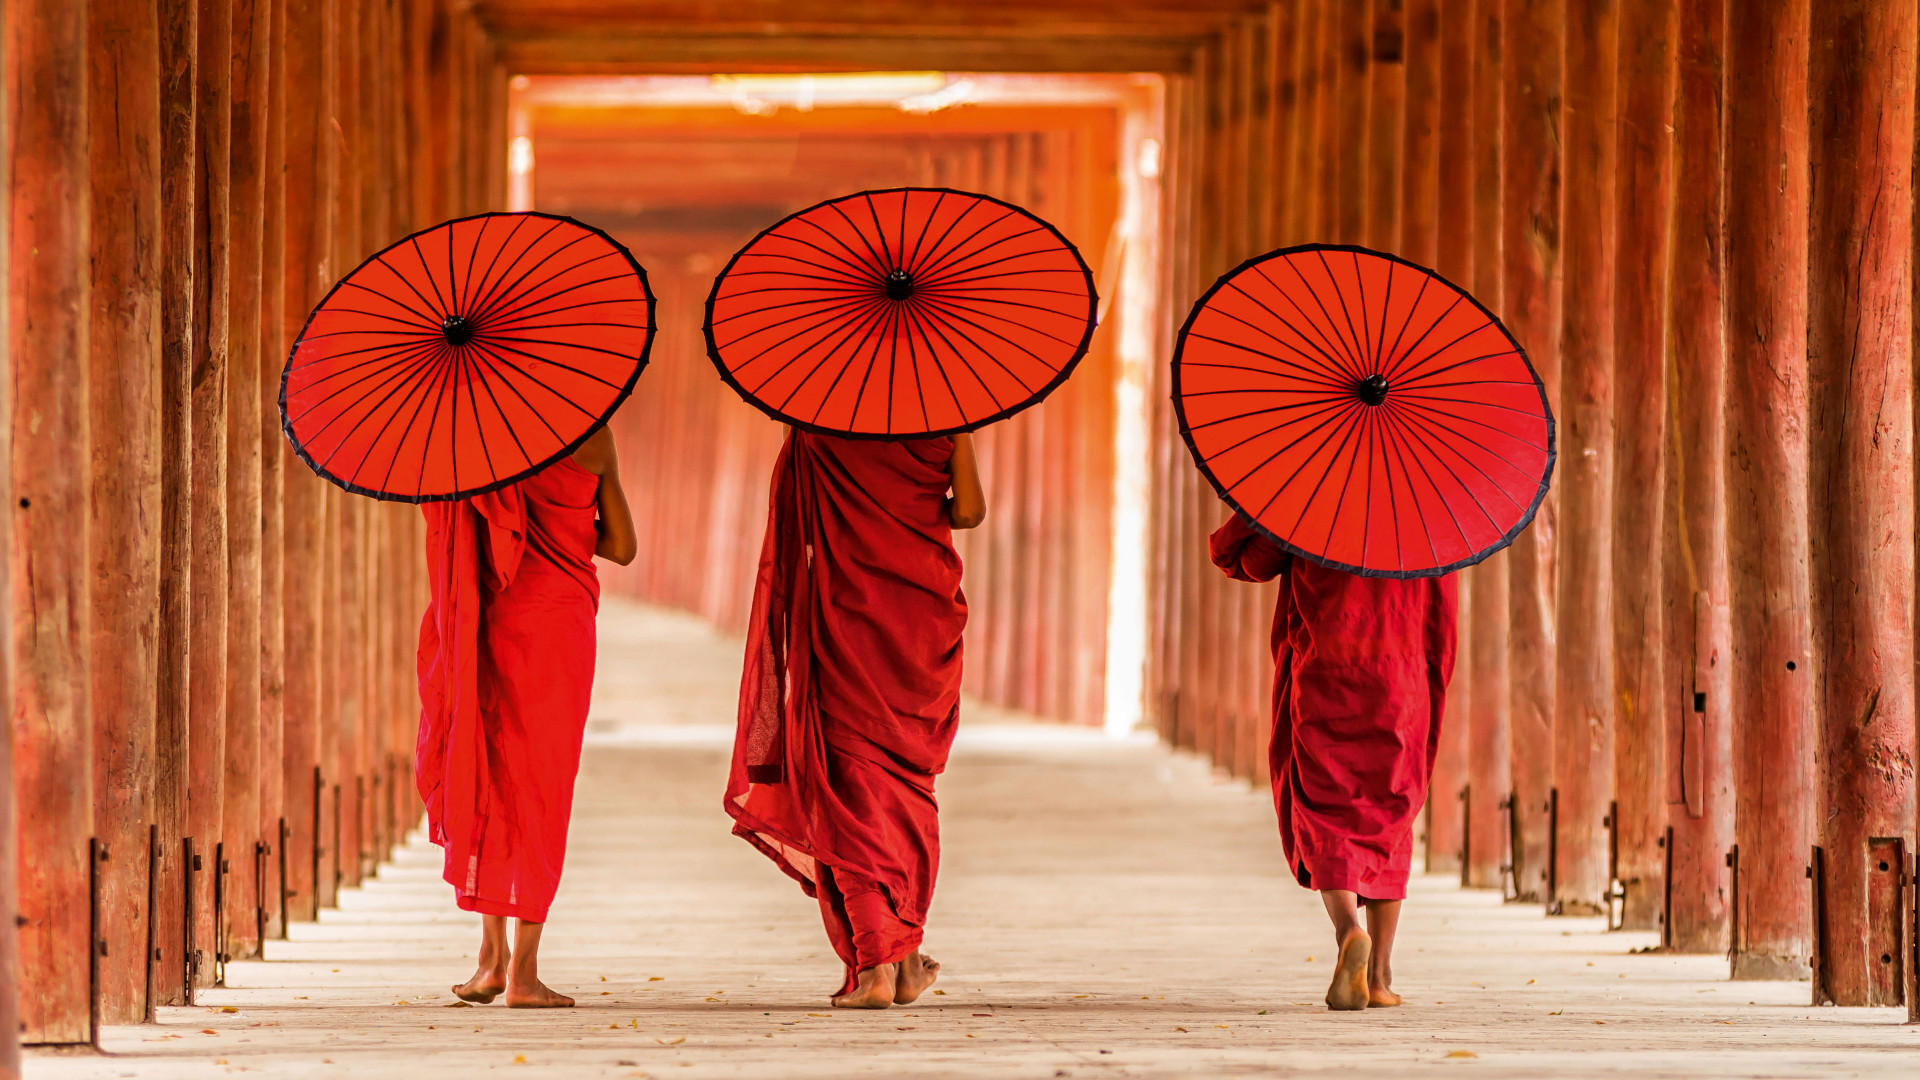 People walking with umbrellas in Myanmar